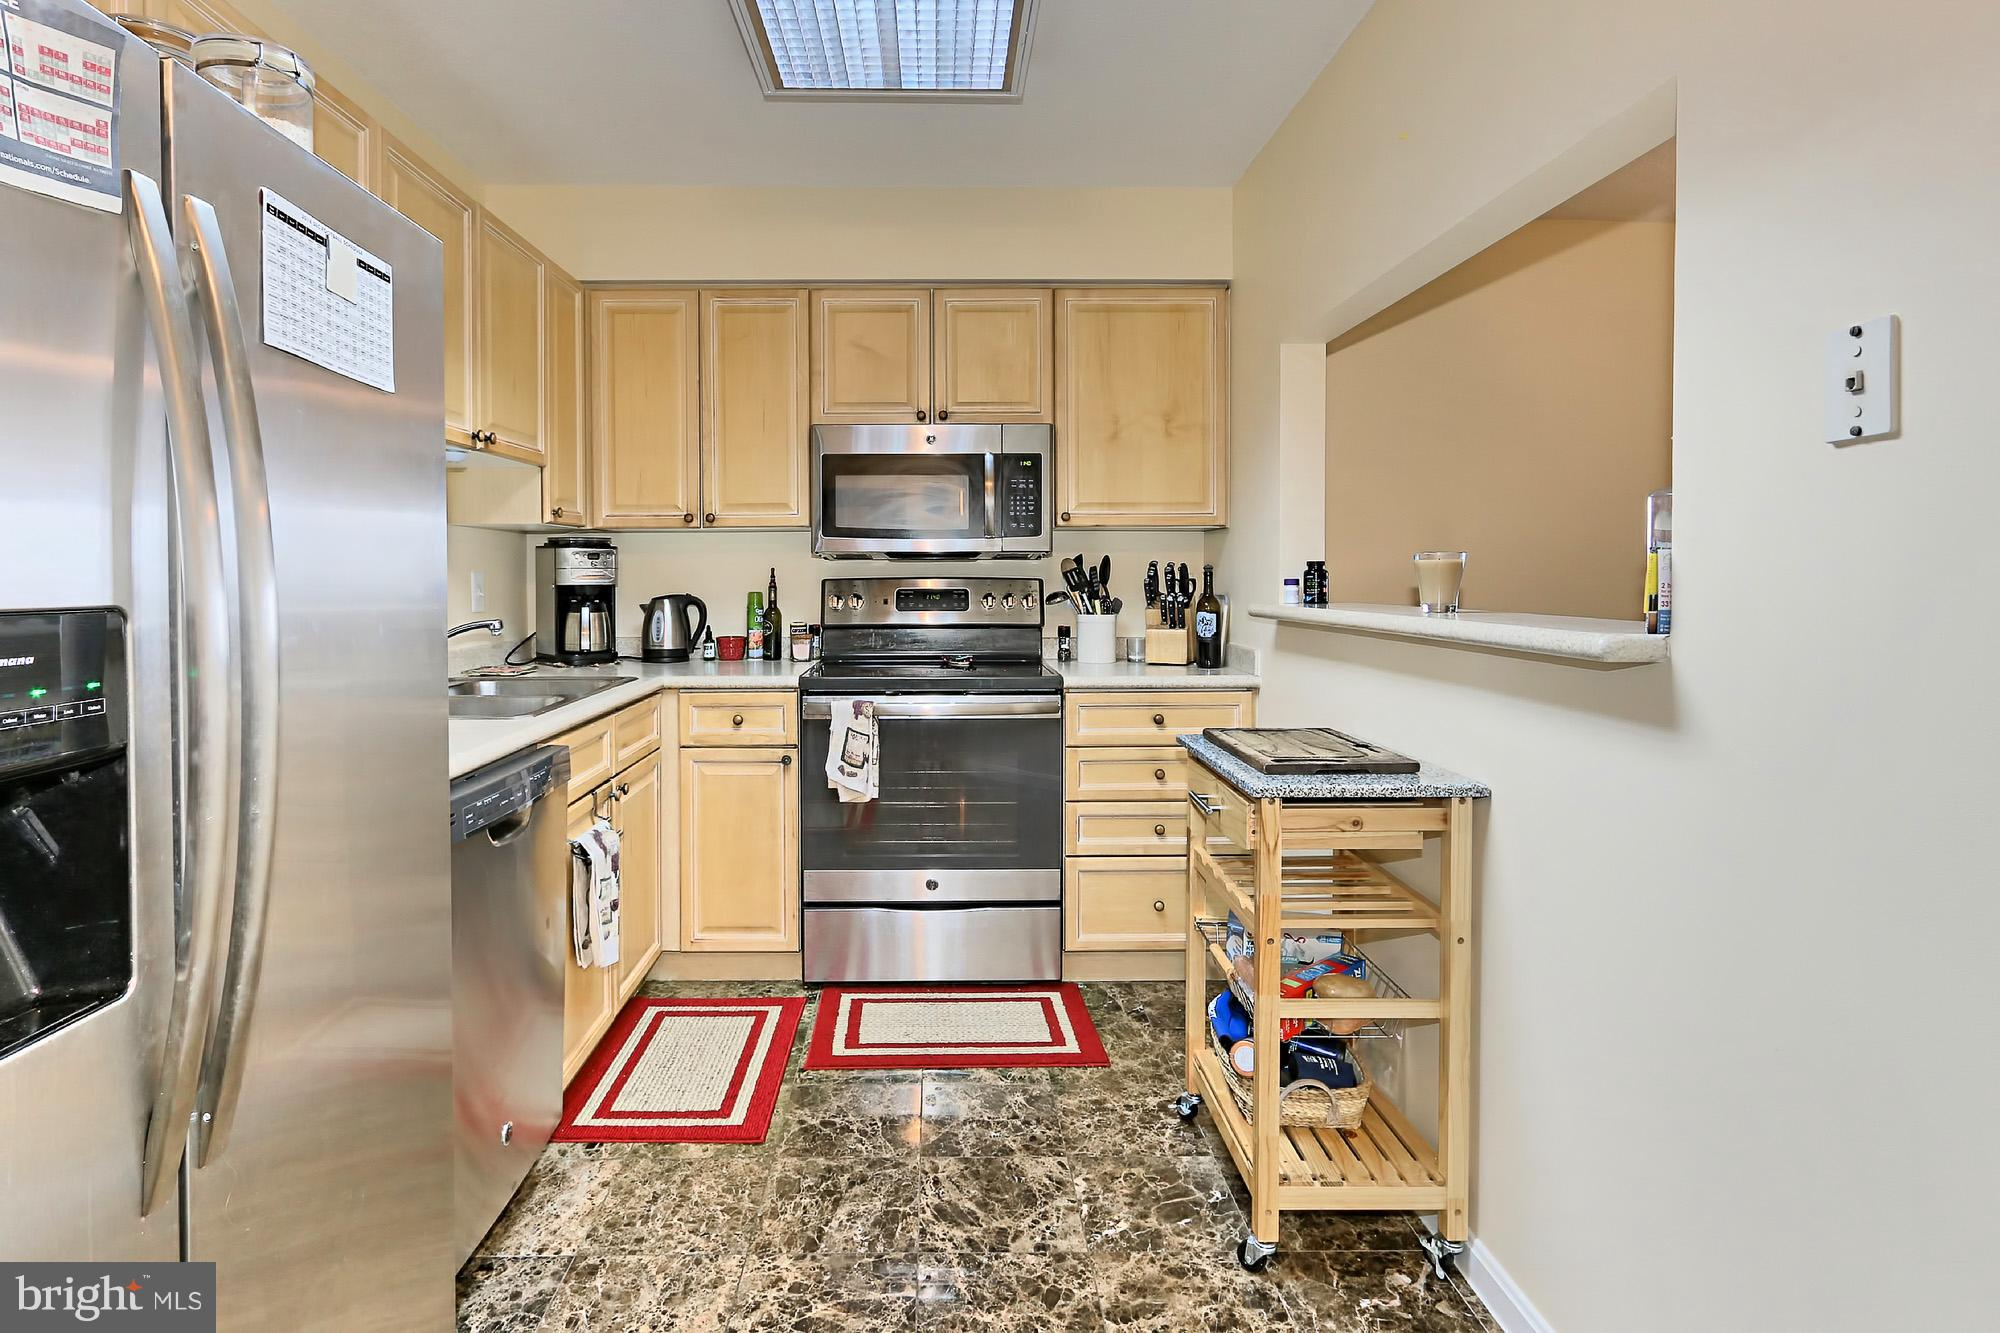 Light & bright open, unique floorplan w/many updates. In 2017: new paint, new BR carpet, newer wood floors in LR/DR. Sunny encl balcony, not incl in 1,145 sqft. Large MBR w/2 closets. MBA has dual vanity, glass encl shwr & sep tub.Sought after South bldg w/quiet view. Walk to 2 metros, Whole Foods,shops,restaurants,movies etc. Enjoy pool,tennis,2 gyms,putting green&24-hr security. 1 garage&storage